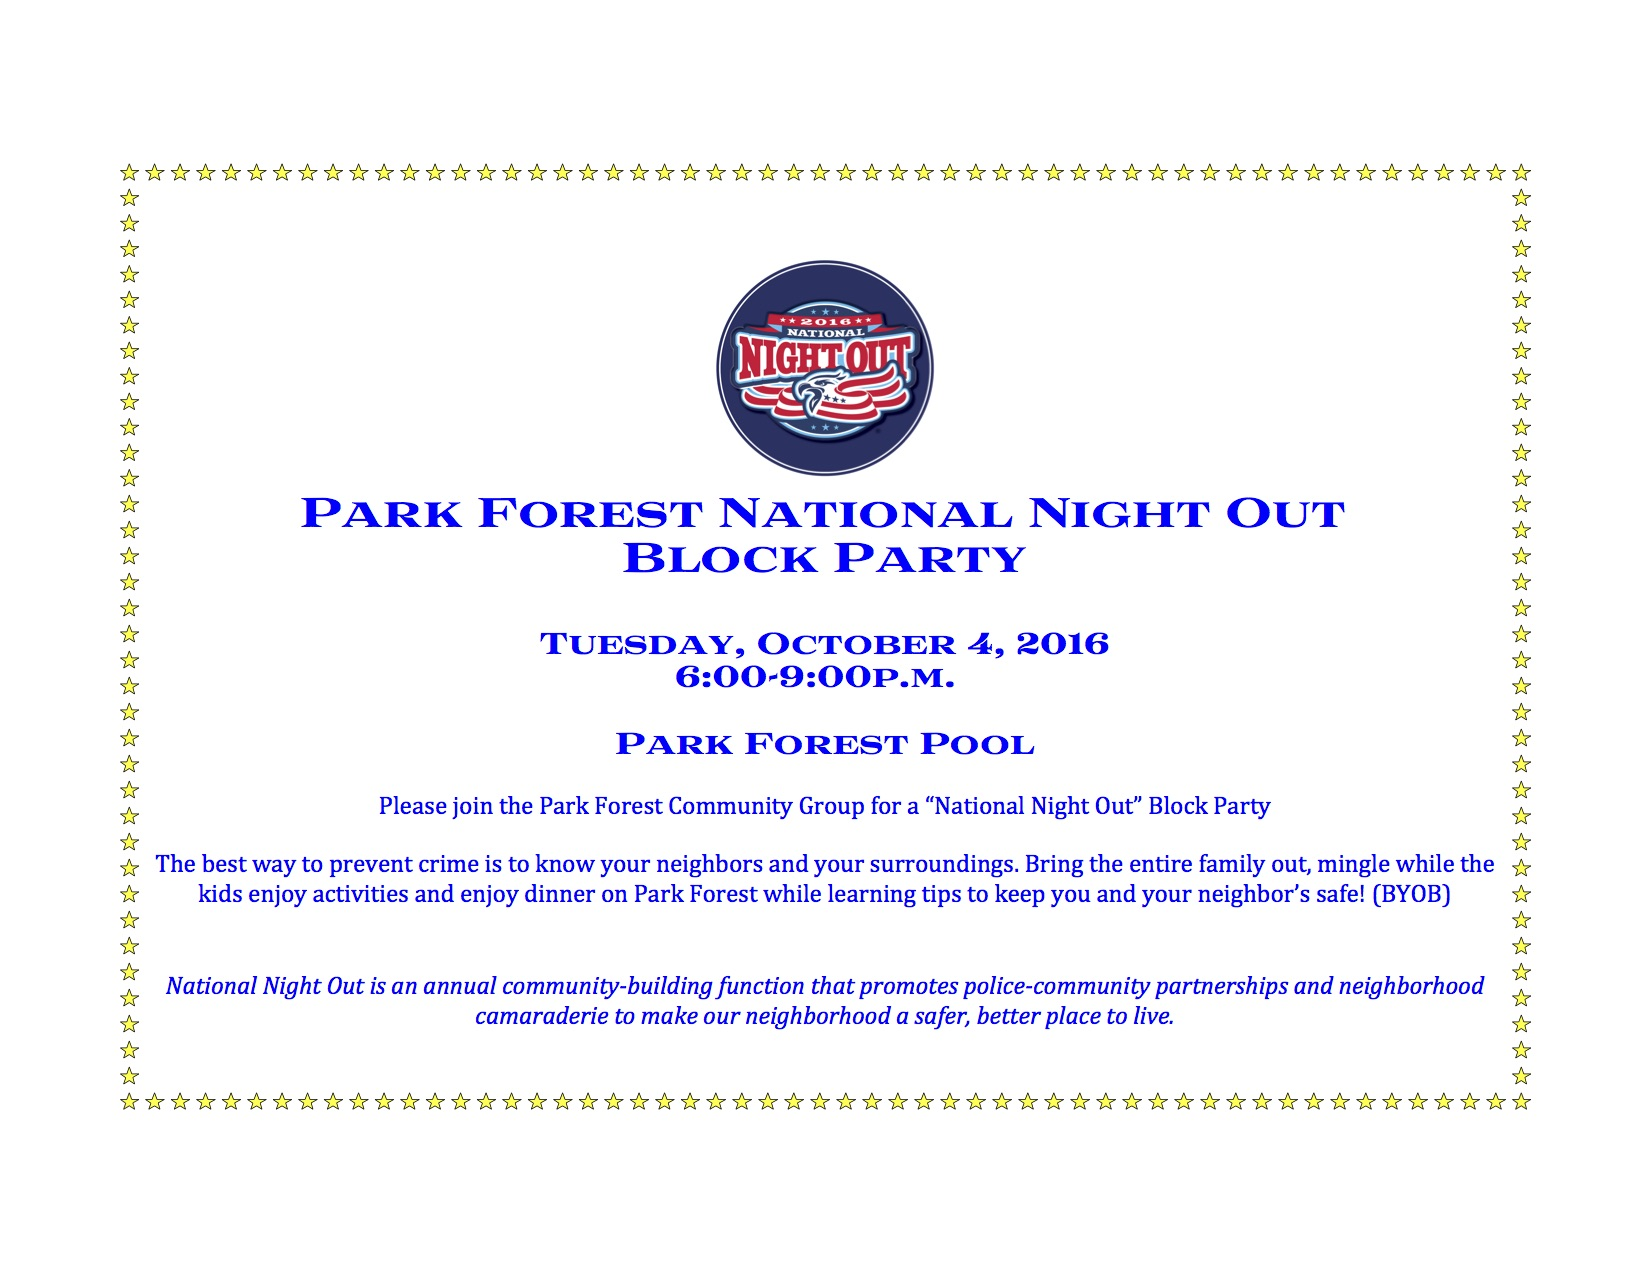 Park Forest National Night Out.jpg